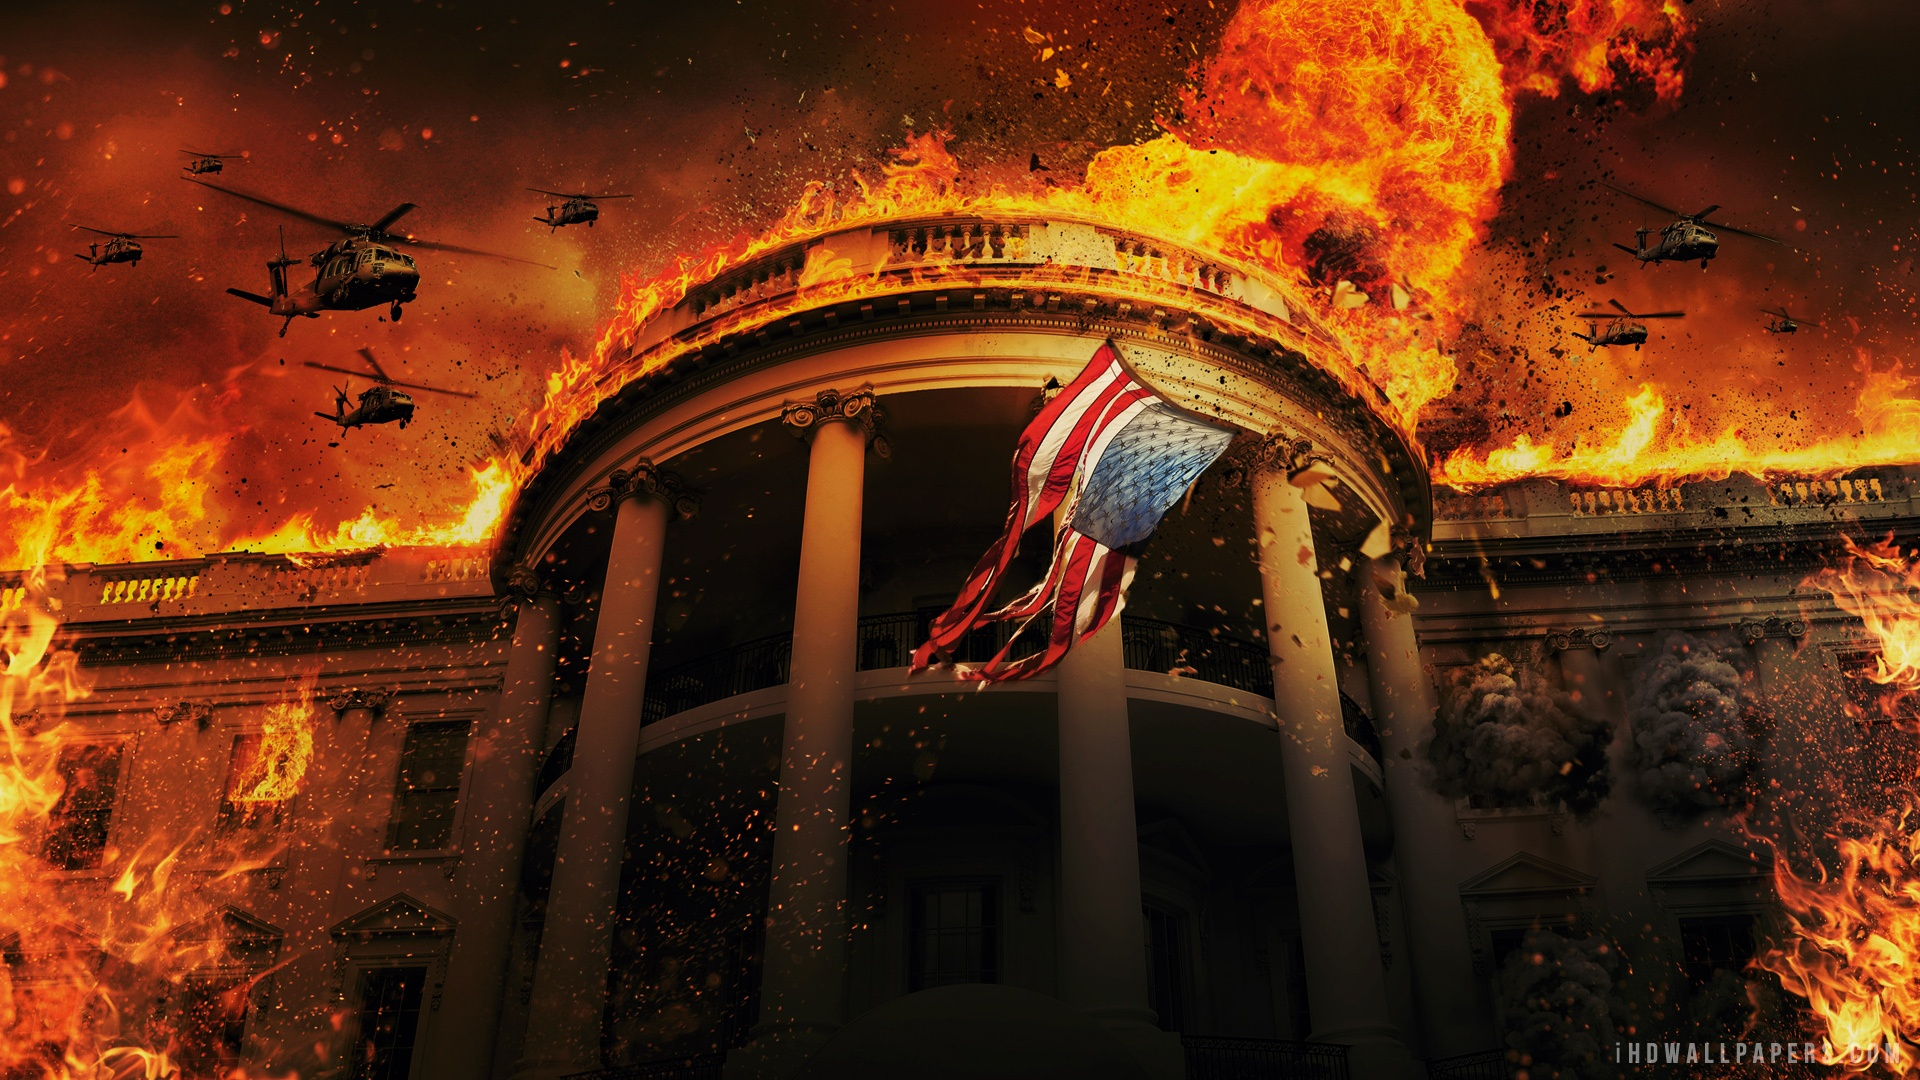 Olympus Has Fallen Wallpaper 1920x1080